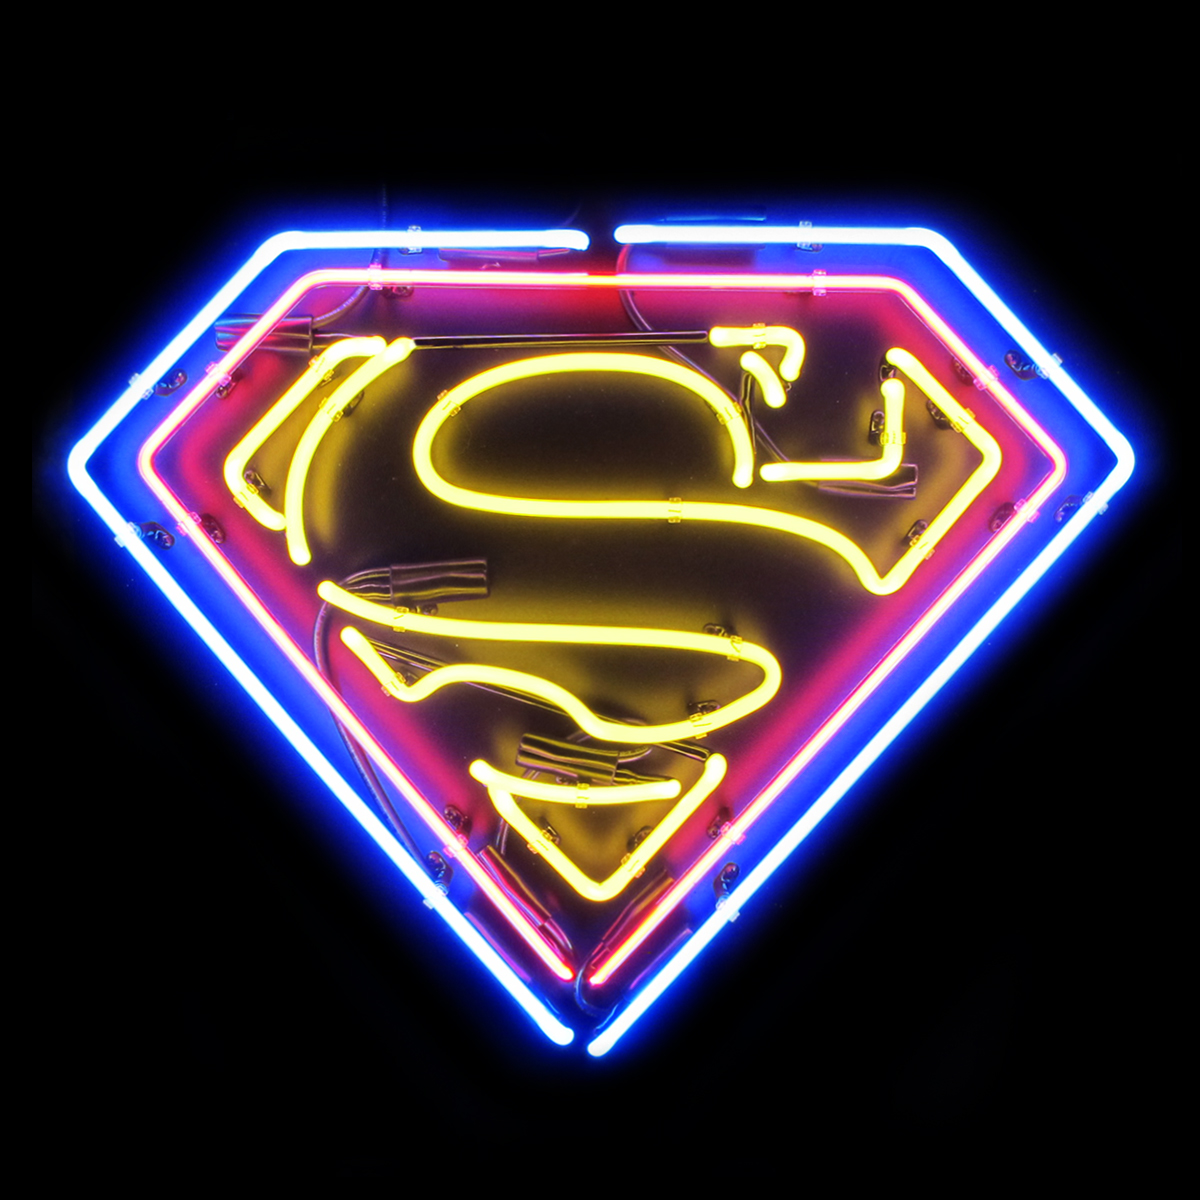 Superman logo sign made with neon light.